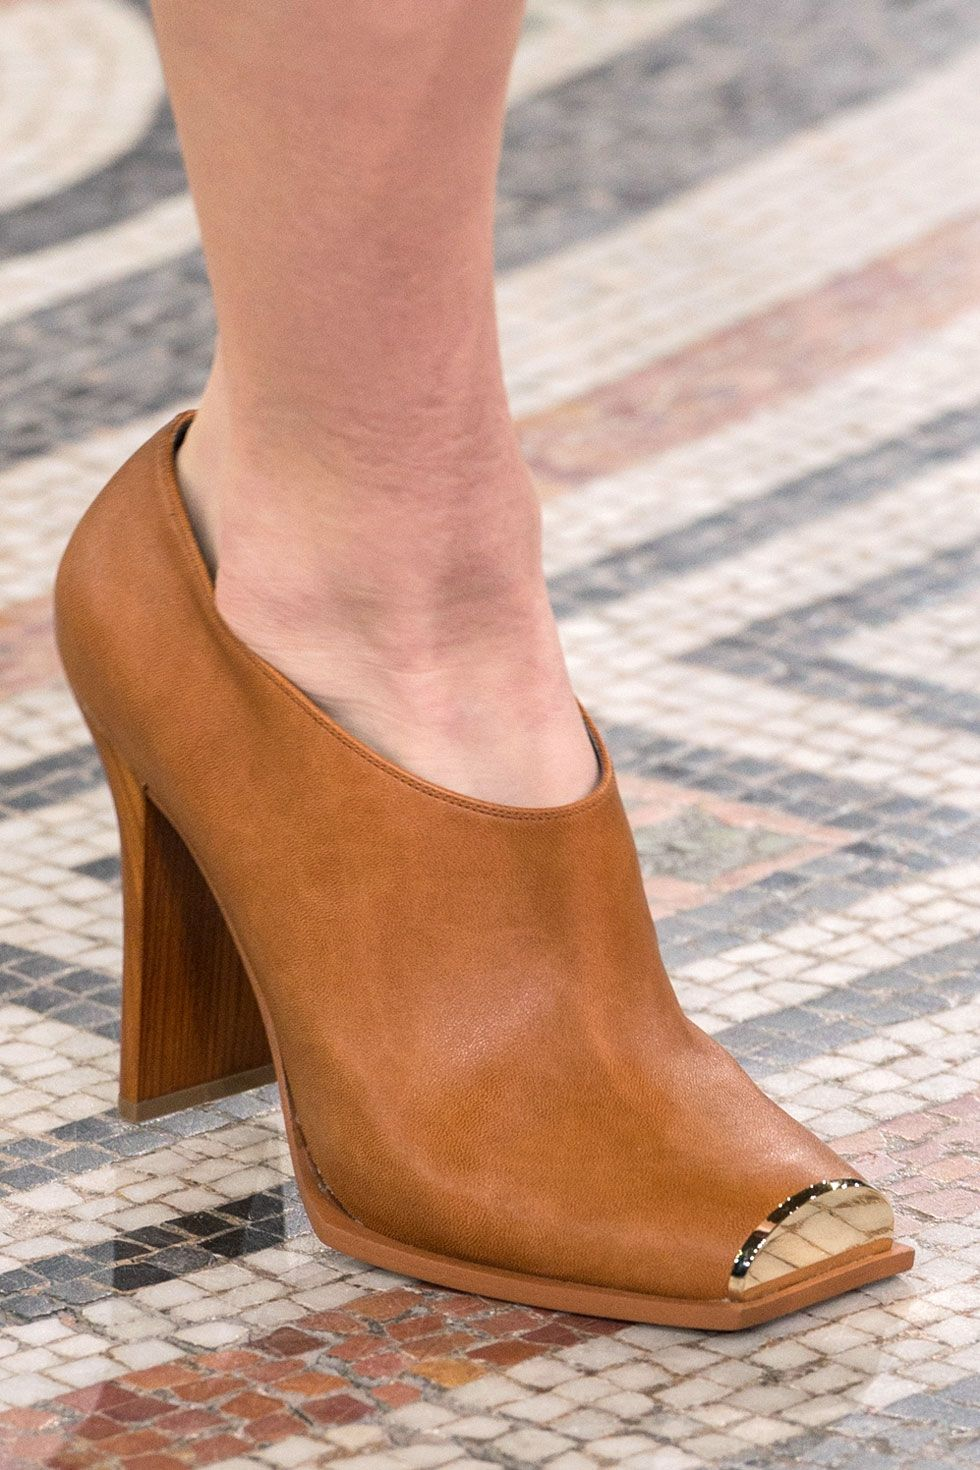 Fall Shoe Trends Cowboy Boots